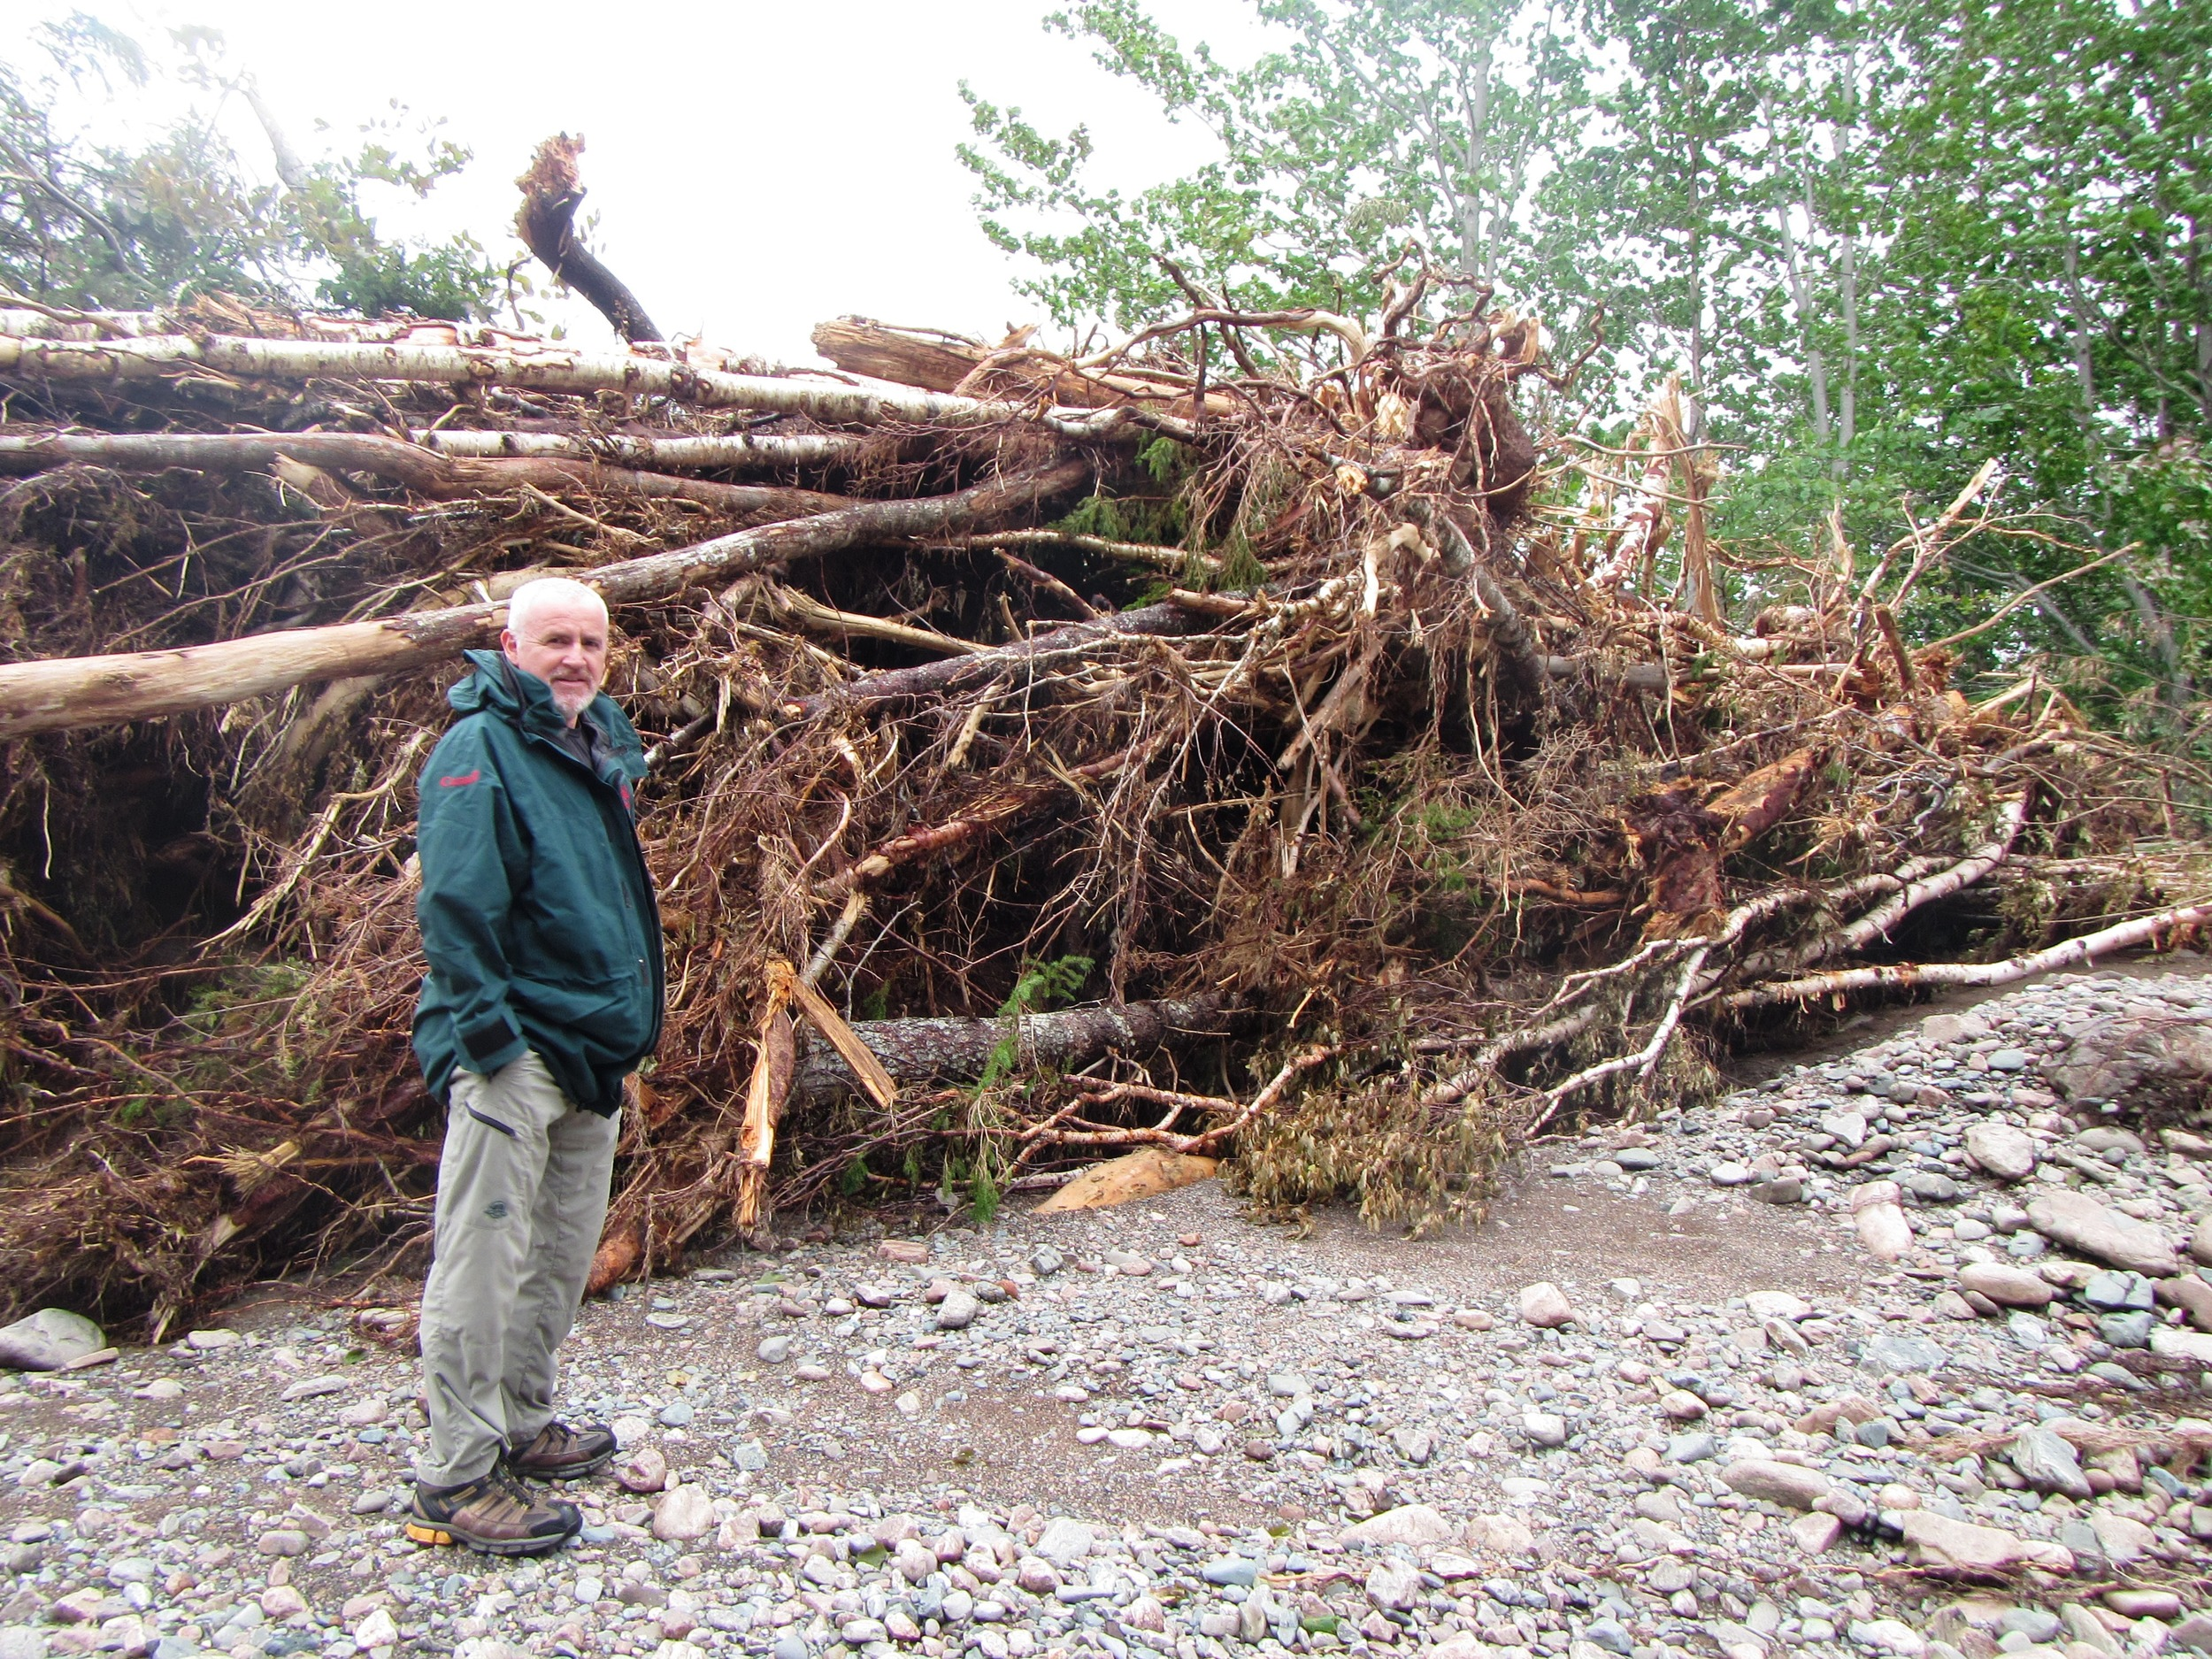 Archie Doucette, with Parks Canada, standing beside a large pile of debris near the outlet of Robert's Brook